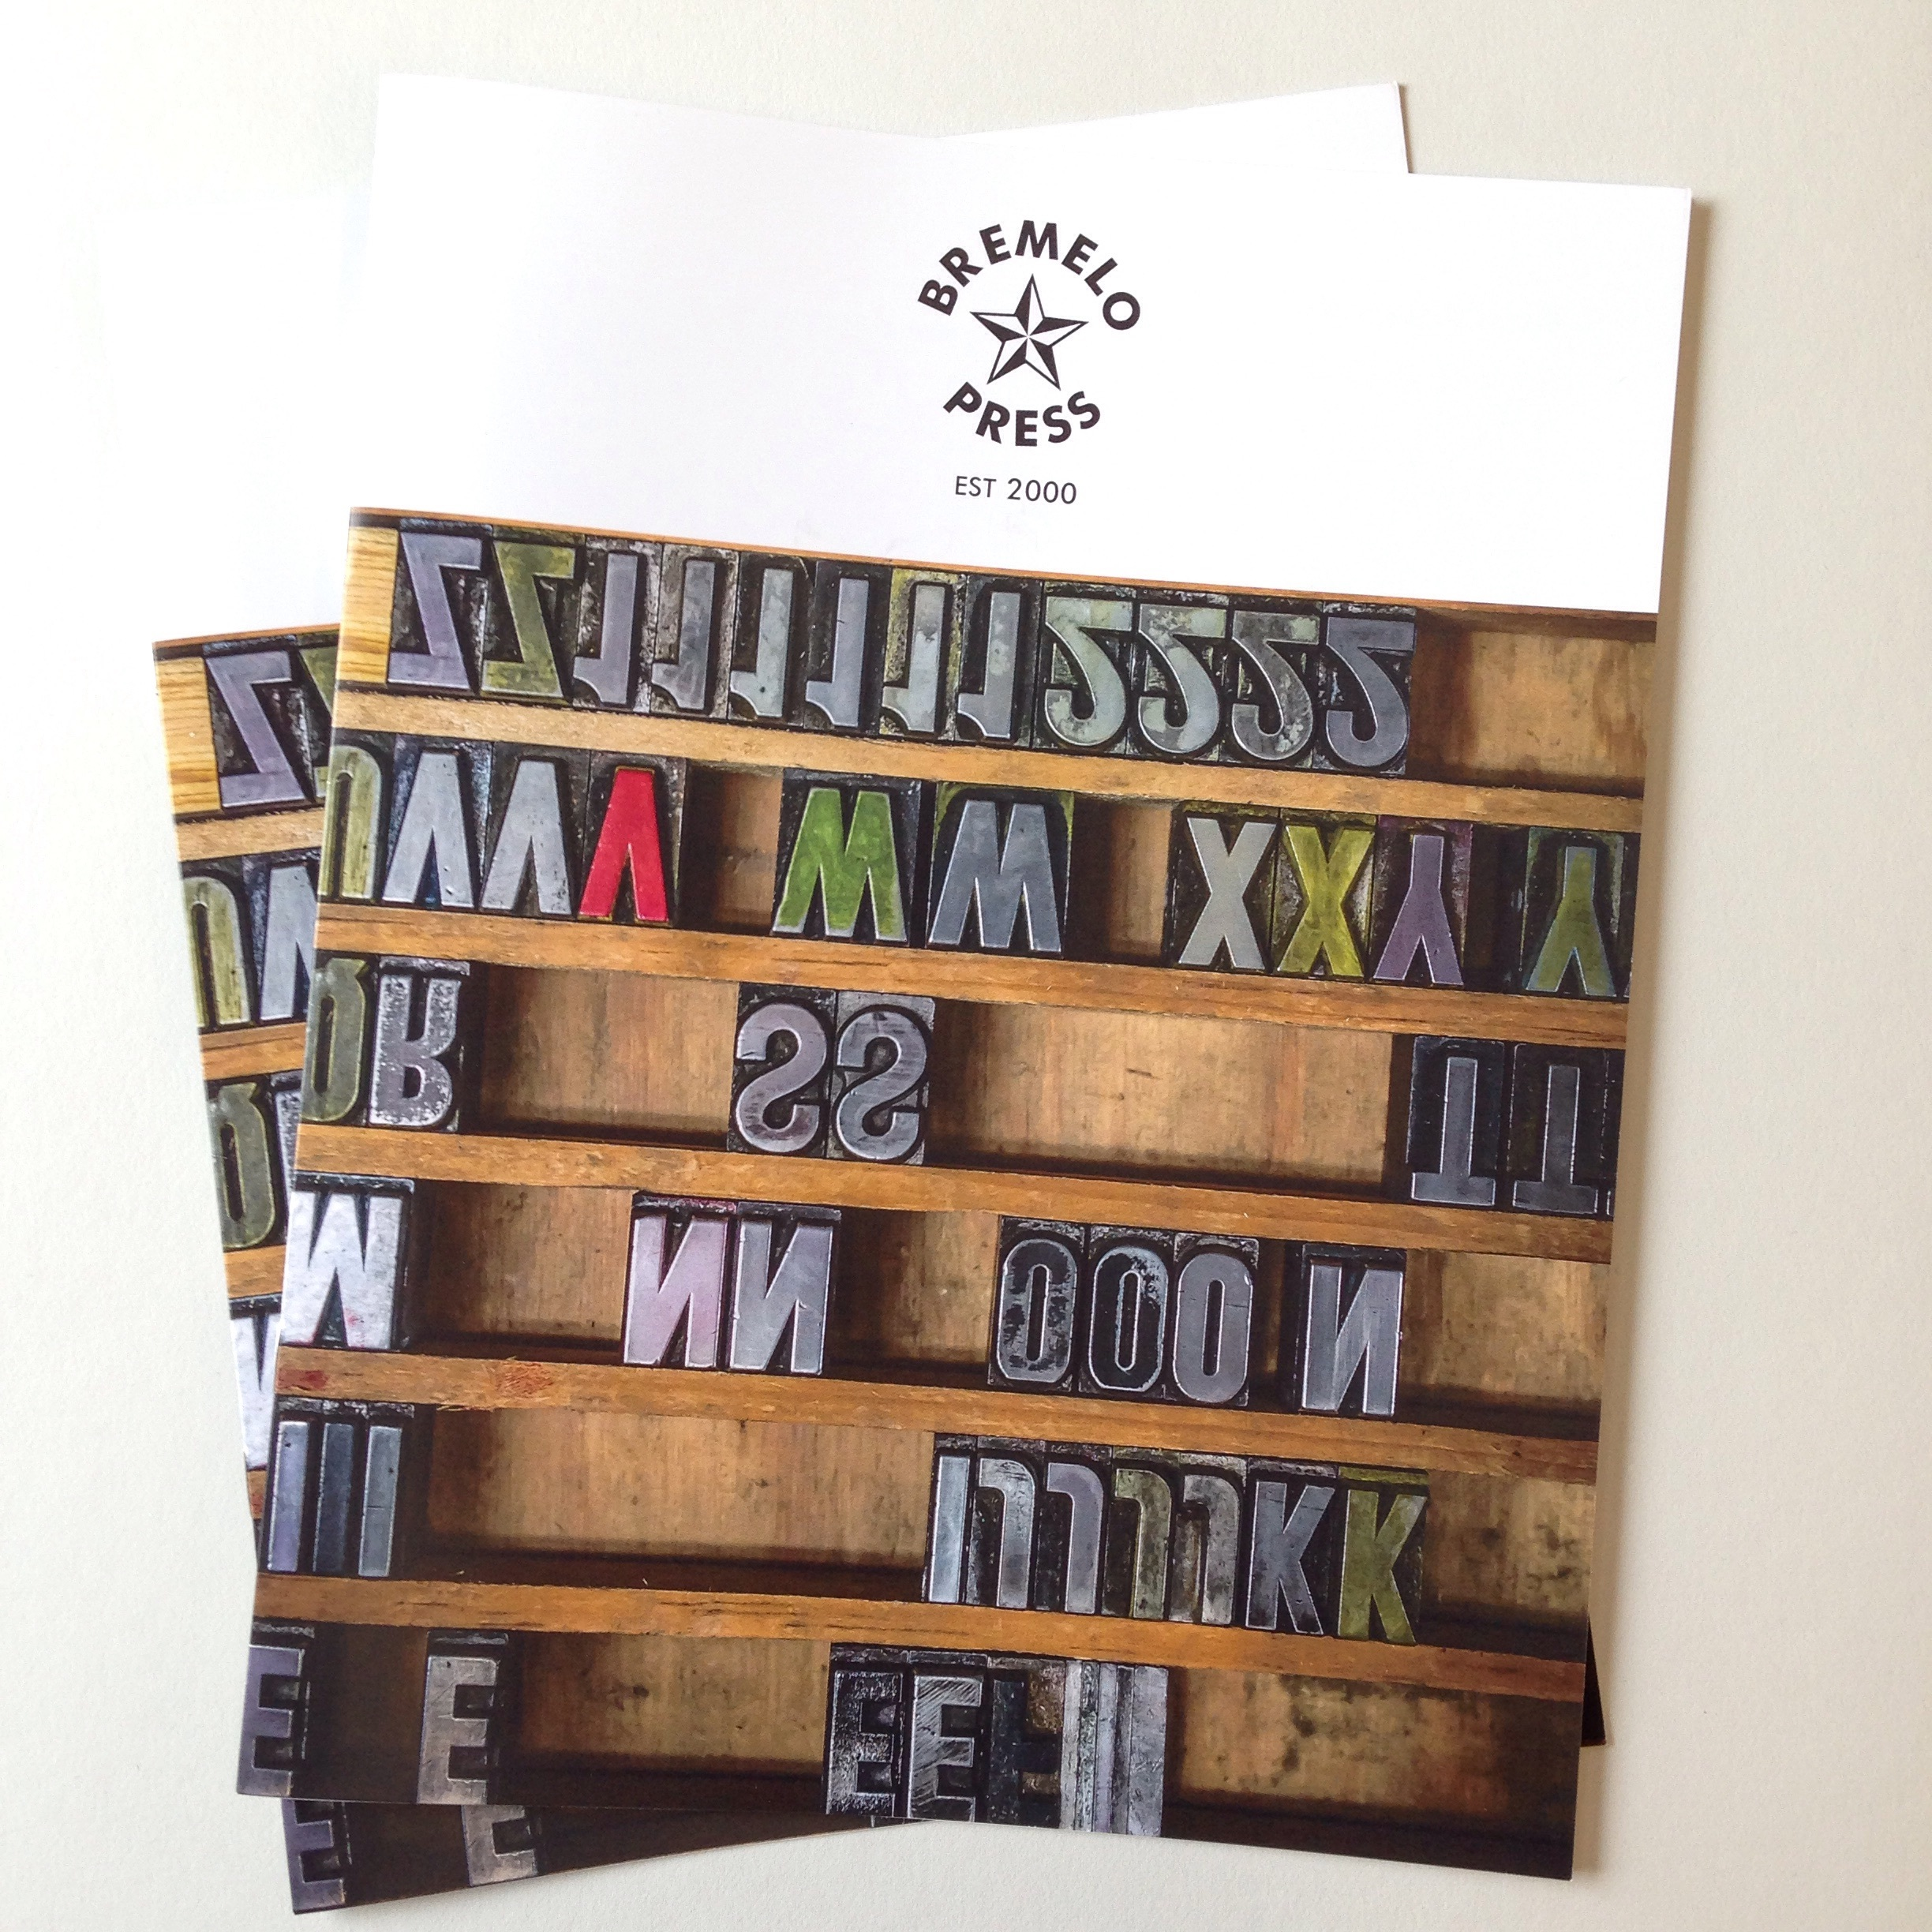 Bremelo Press wholesale catalog with cover photo by Noah Fecks.